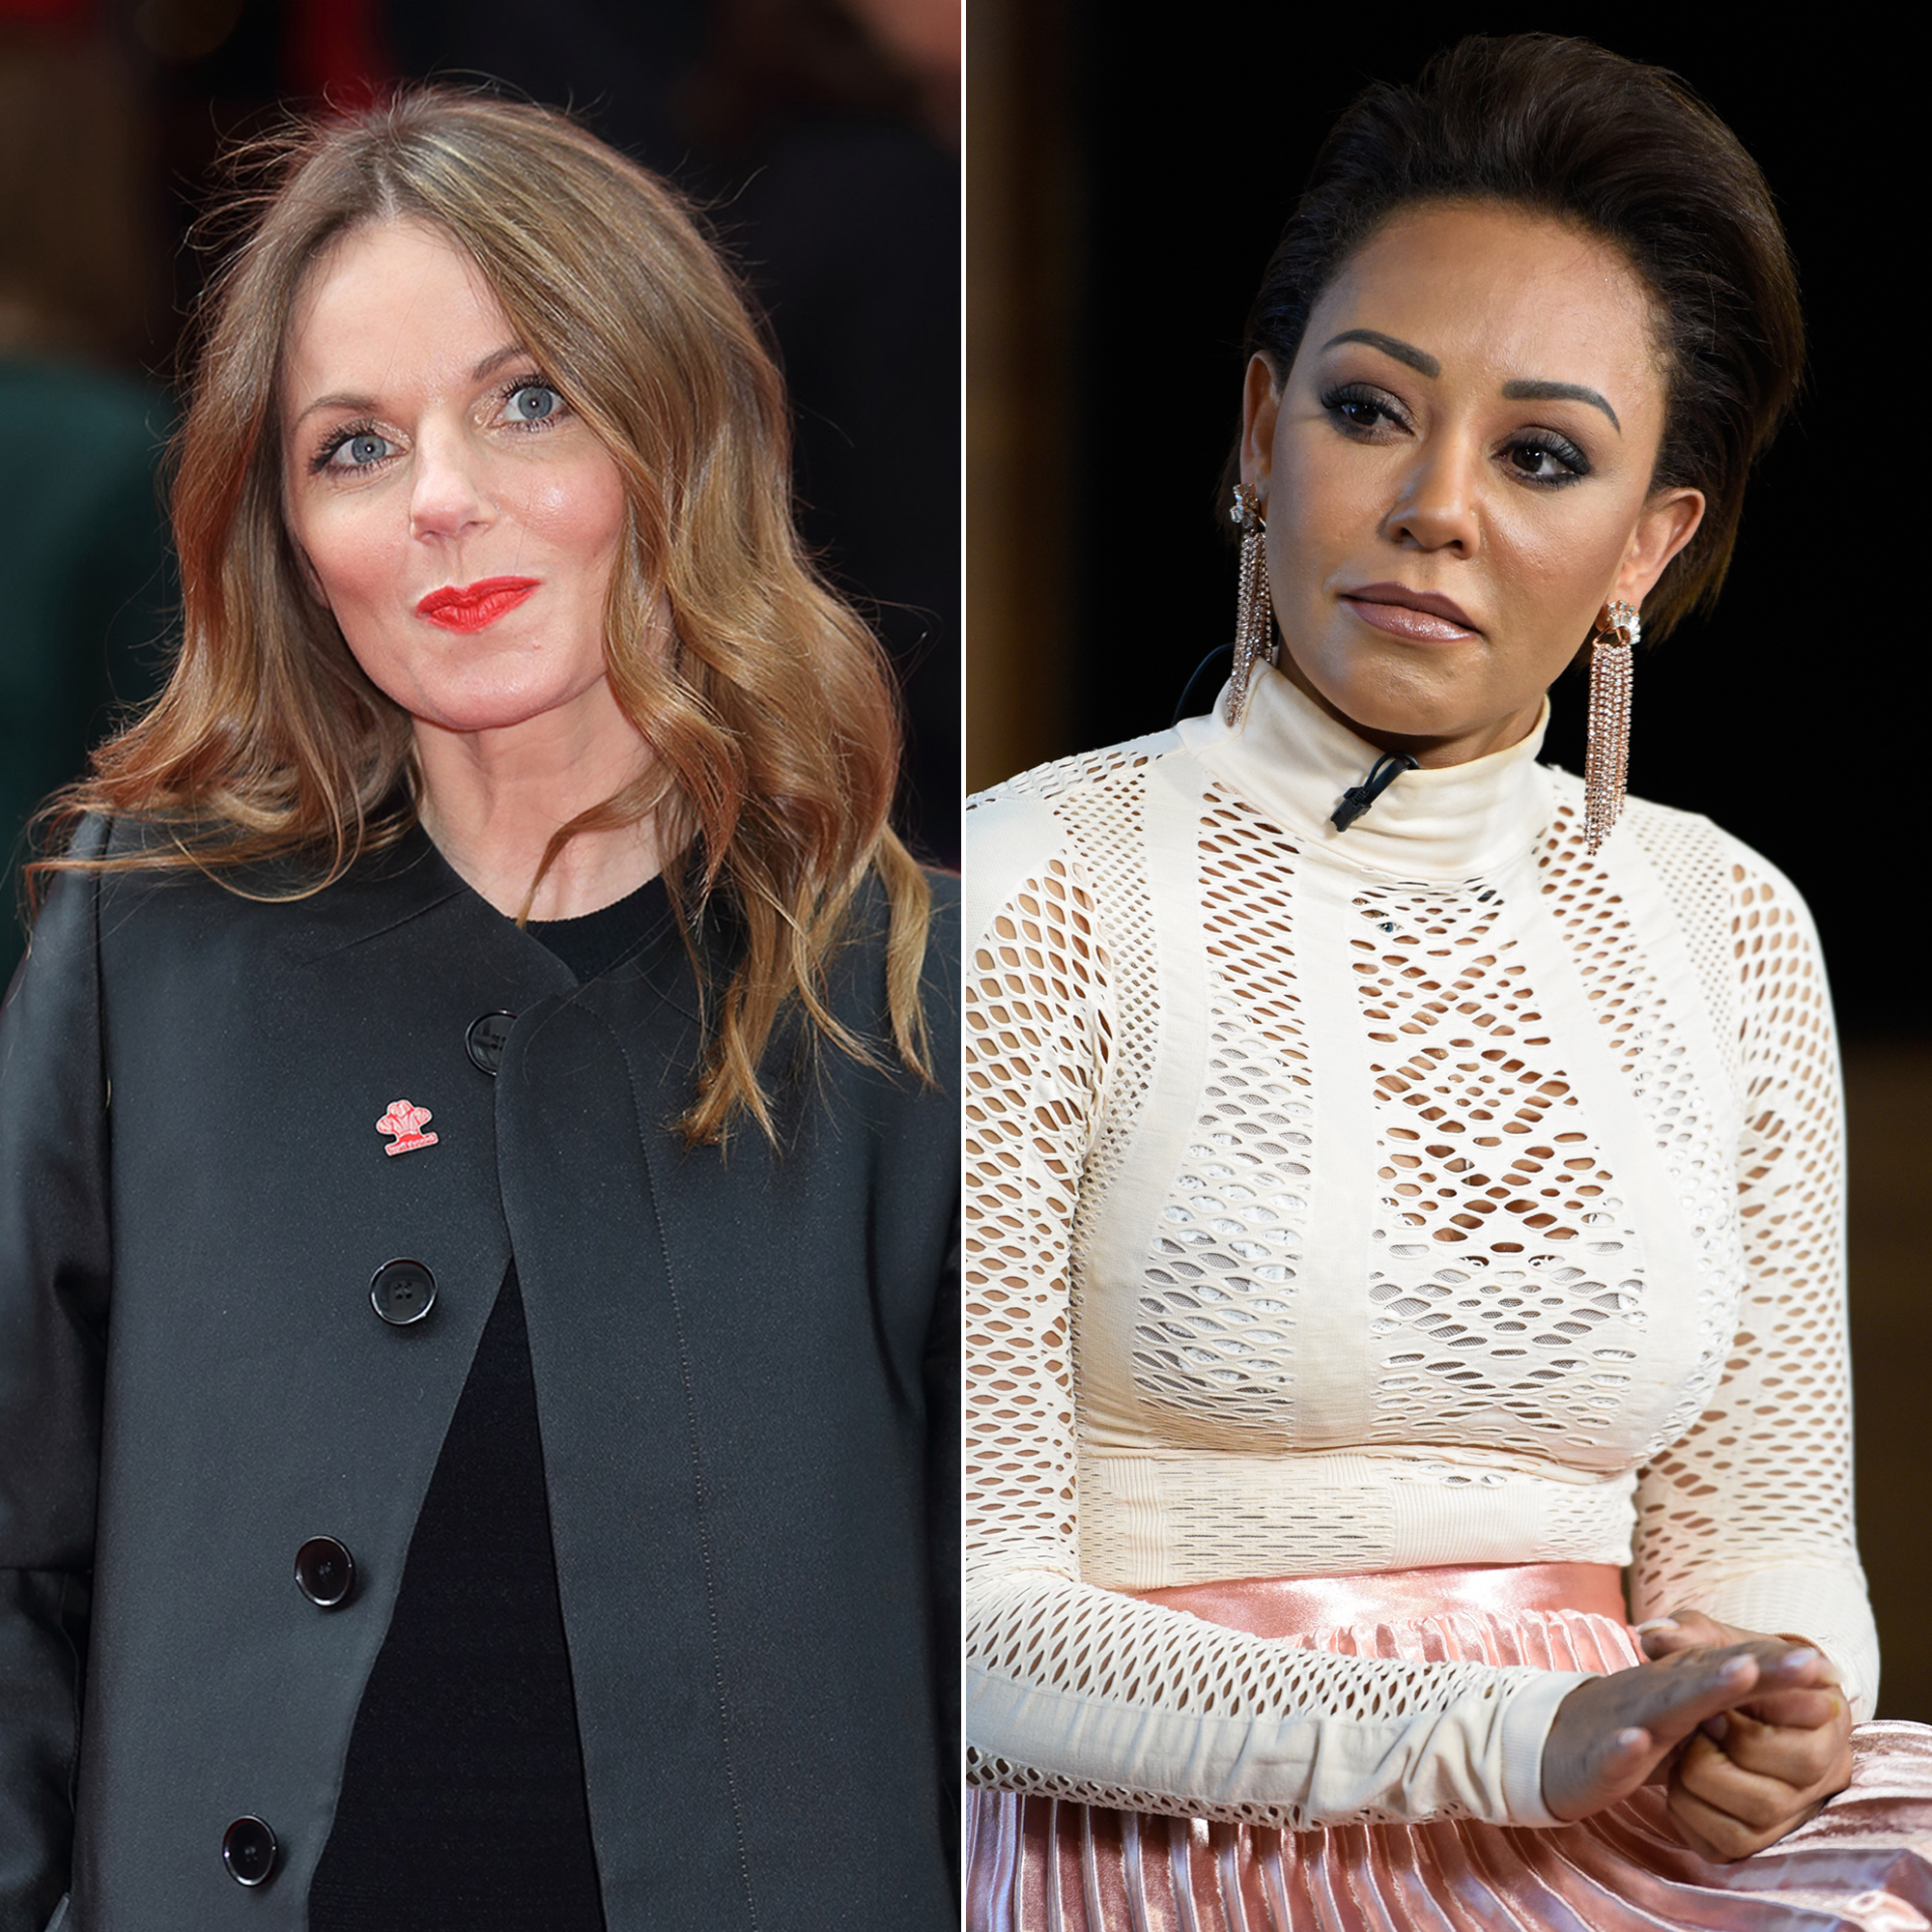 Geri Halliwell Calls Mel B's Sex Claims 'Simply Not True' and 'Very Hurtful'